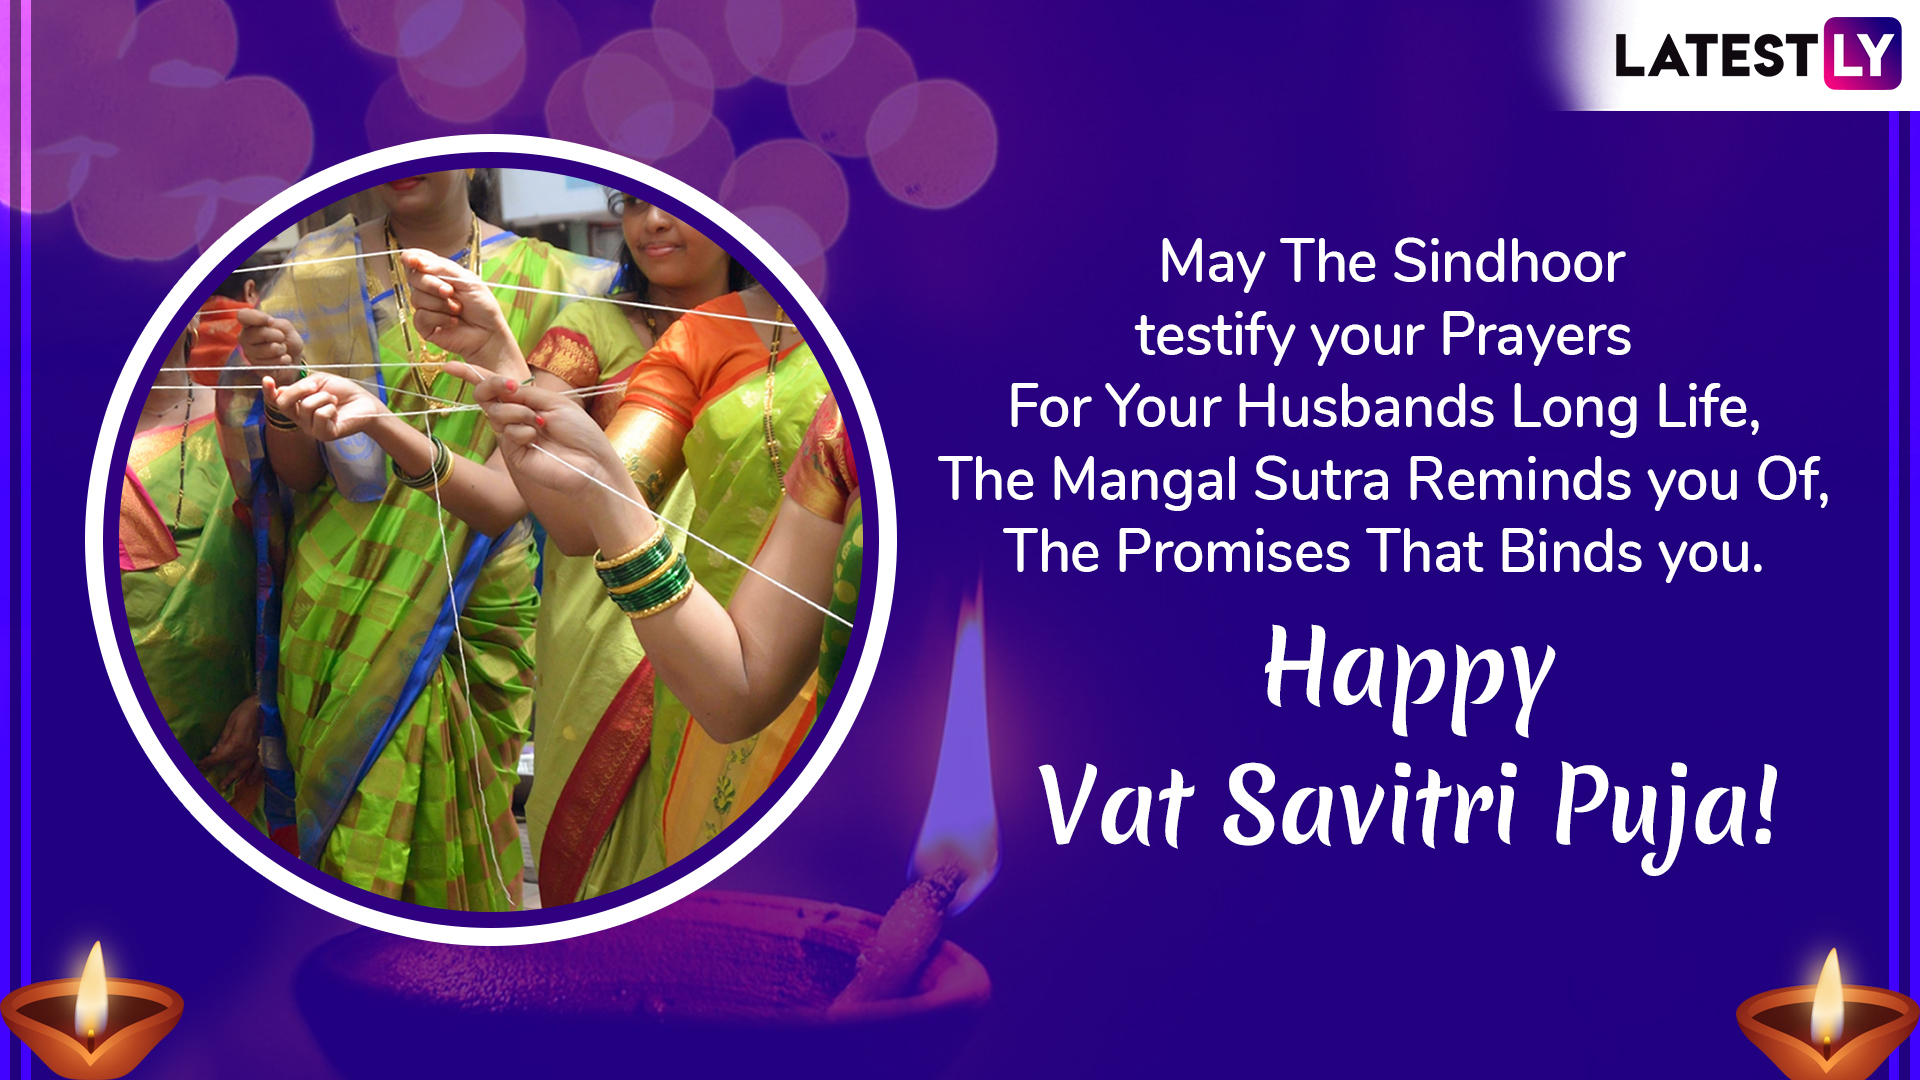 May The Sindhoor testify your Prayers For Your Husbands Long Life, The Mangal Sutra Reminds you Of, The Promises That Binds you. Happy Vat Savitri Puja!